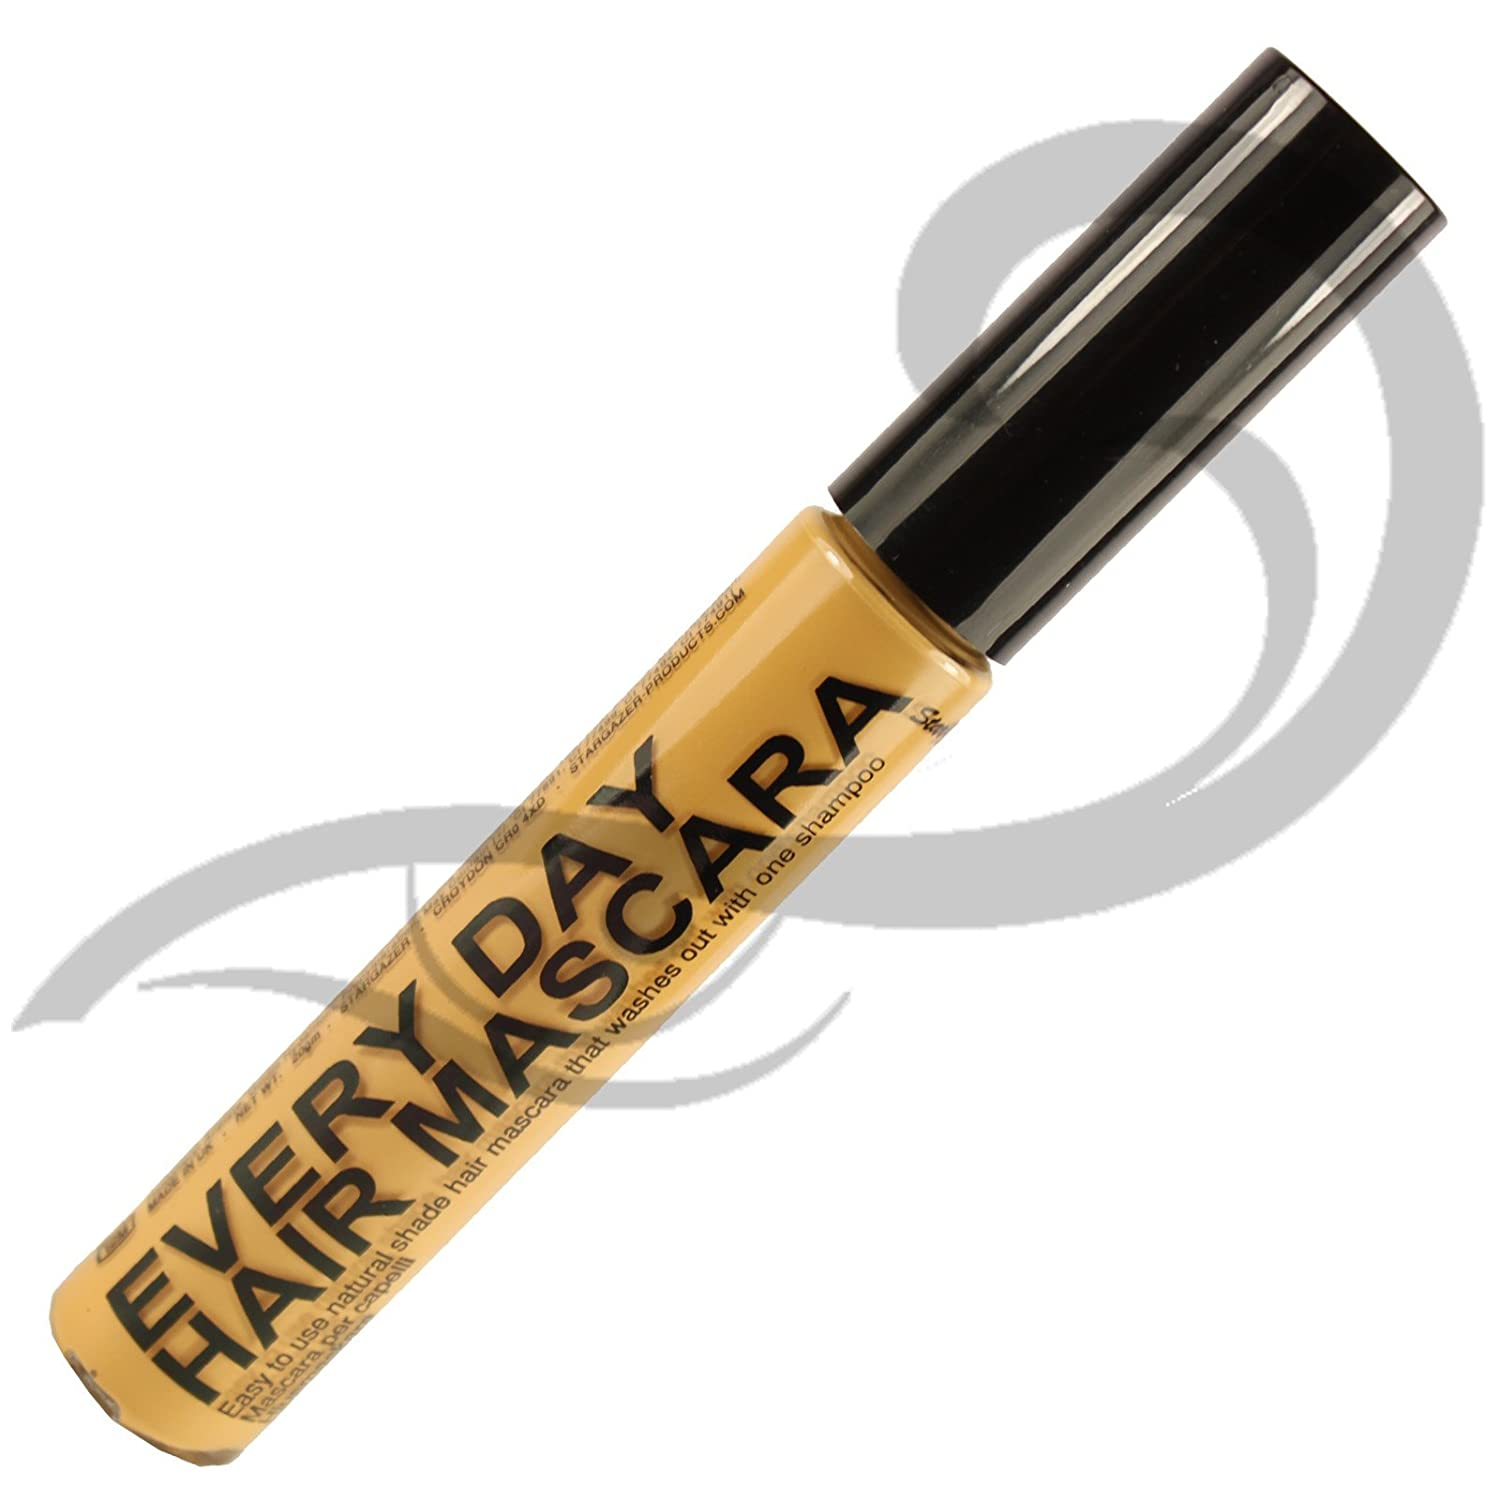 Stargazer Everyday Hair Mascara All Colours (Blonde)